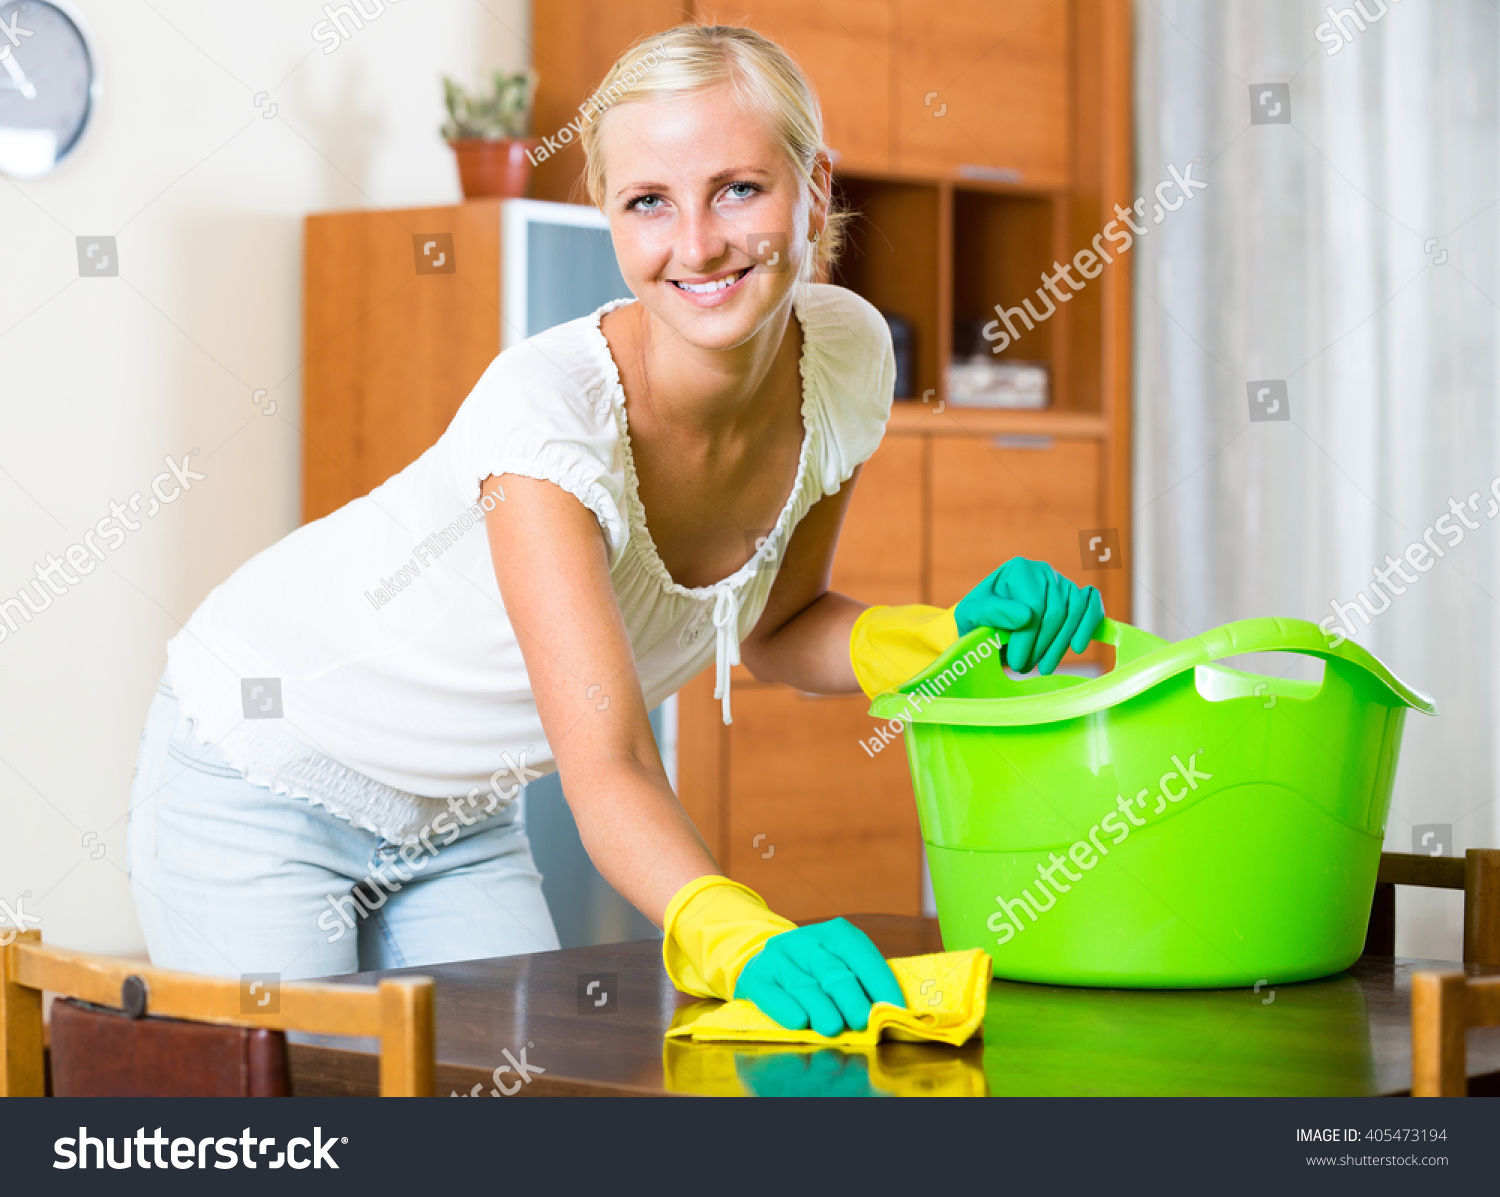 dusting furniture. Cheerful Young Housewife In Rubber Gloves Dusting Furniture At Home